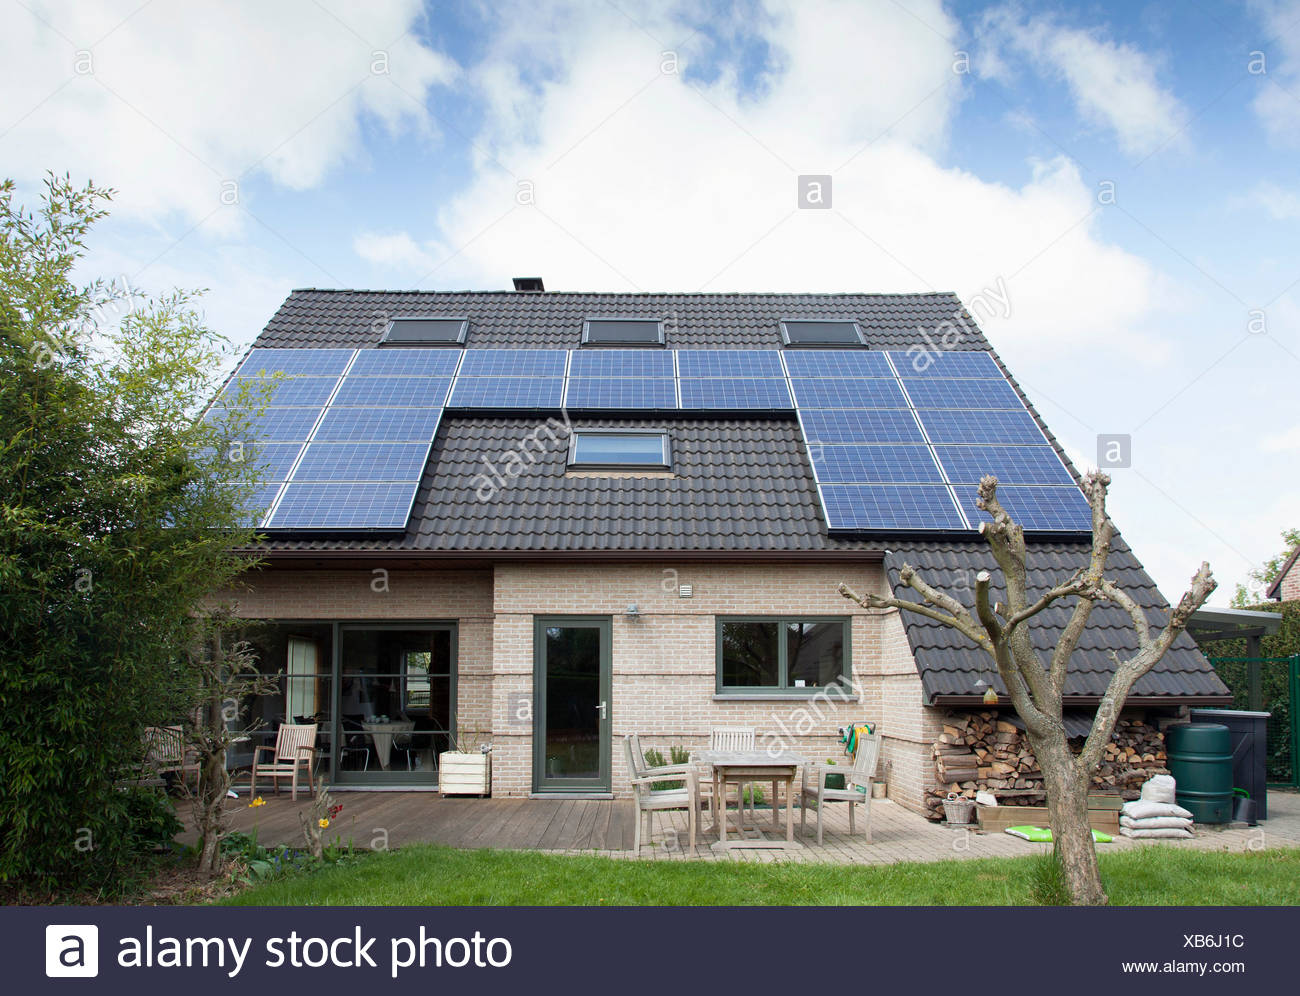 solar panels bungalow roof solar stockfotos solar panels. Black Bedroom Furniture Sets. Home Design Ideas